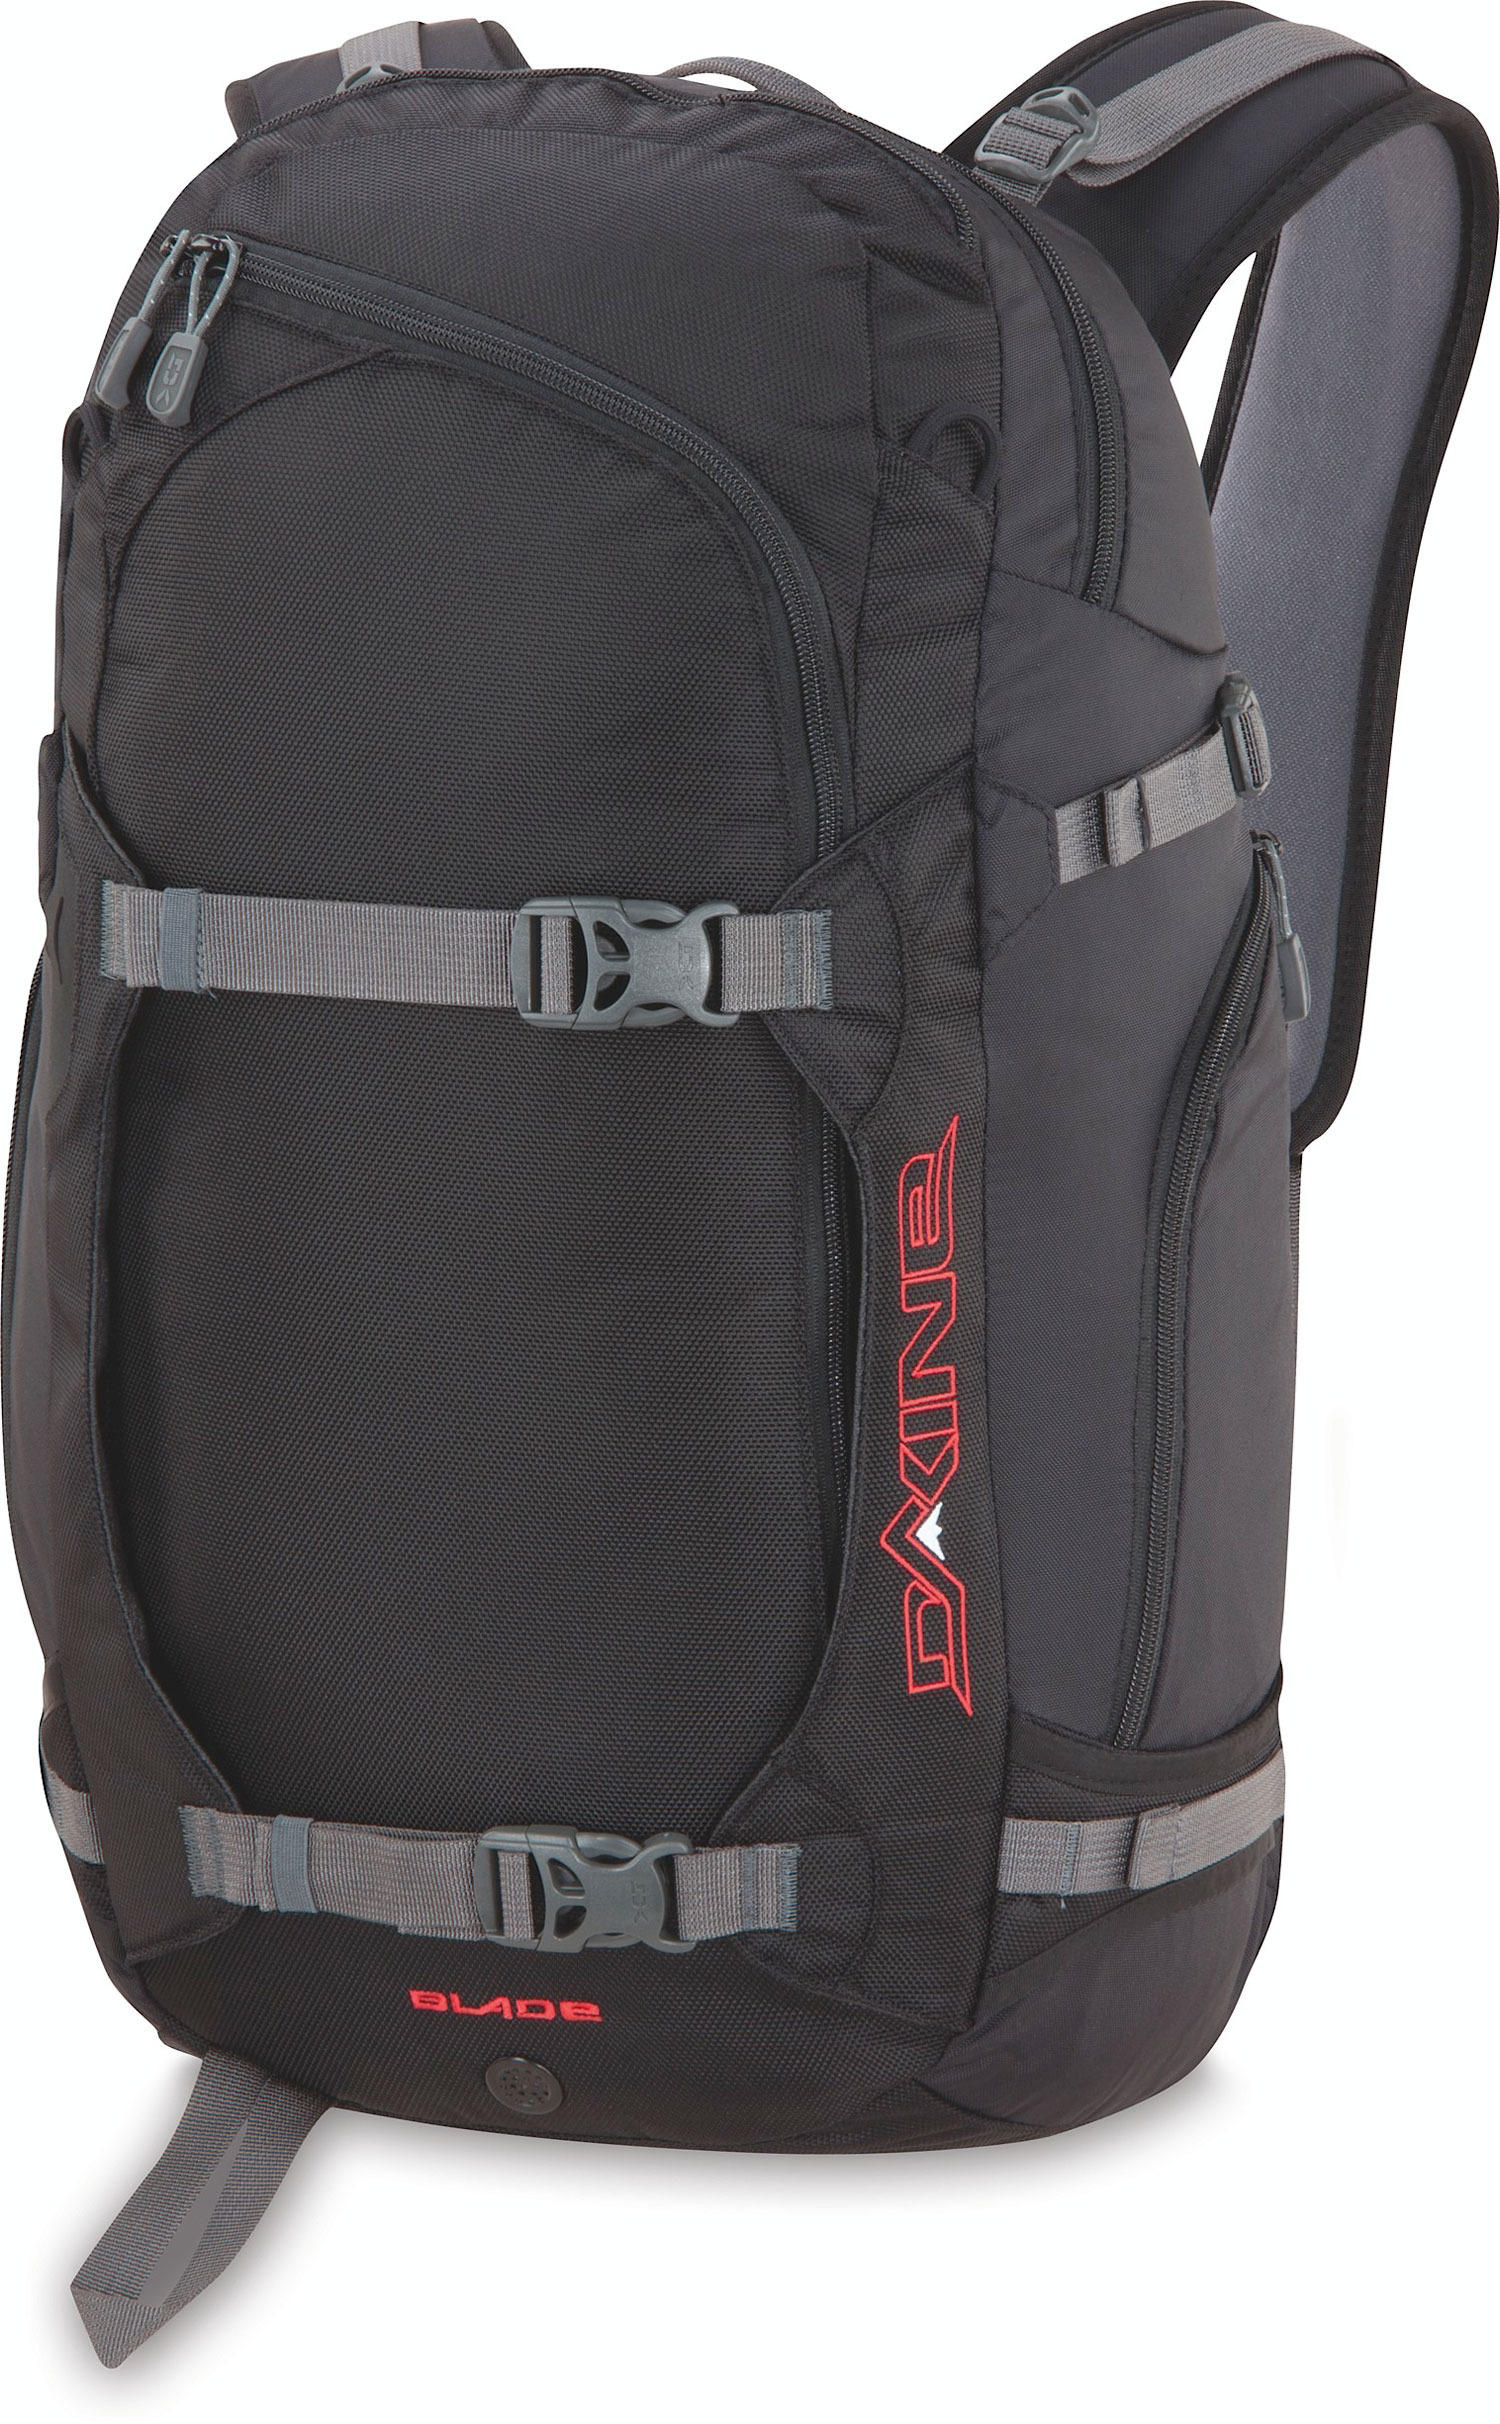 "Ski The durable, feature-loaded DAKINE Blade 38L Backpack boasts more than enough storage space for all-day backcountry excursions, with comfortable carrying options for both boards and skis.Key Features of the Dakine Blade 38L Backpack:  24 x 13 x 9"" (61 x 32 x 23cm   38L (2300 cu. in.   630D Nylon  1260 Ballistic Nylon.  Vertical or cross snowboard carry  Retractable cable or a-frame ski carry  Top load and back access entry into main compartment  Deployable helmet carry  Insulated hydro sleeve  Quick access snow tool/snow shovel pocket  Quick draw ice axe sleeve  Load compression straps  Padded waist belt  Billowed stash pocket. - $113.95"